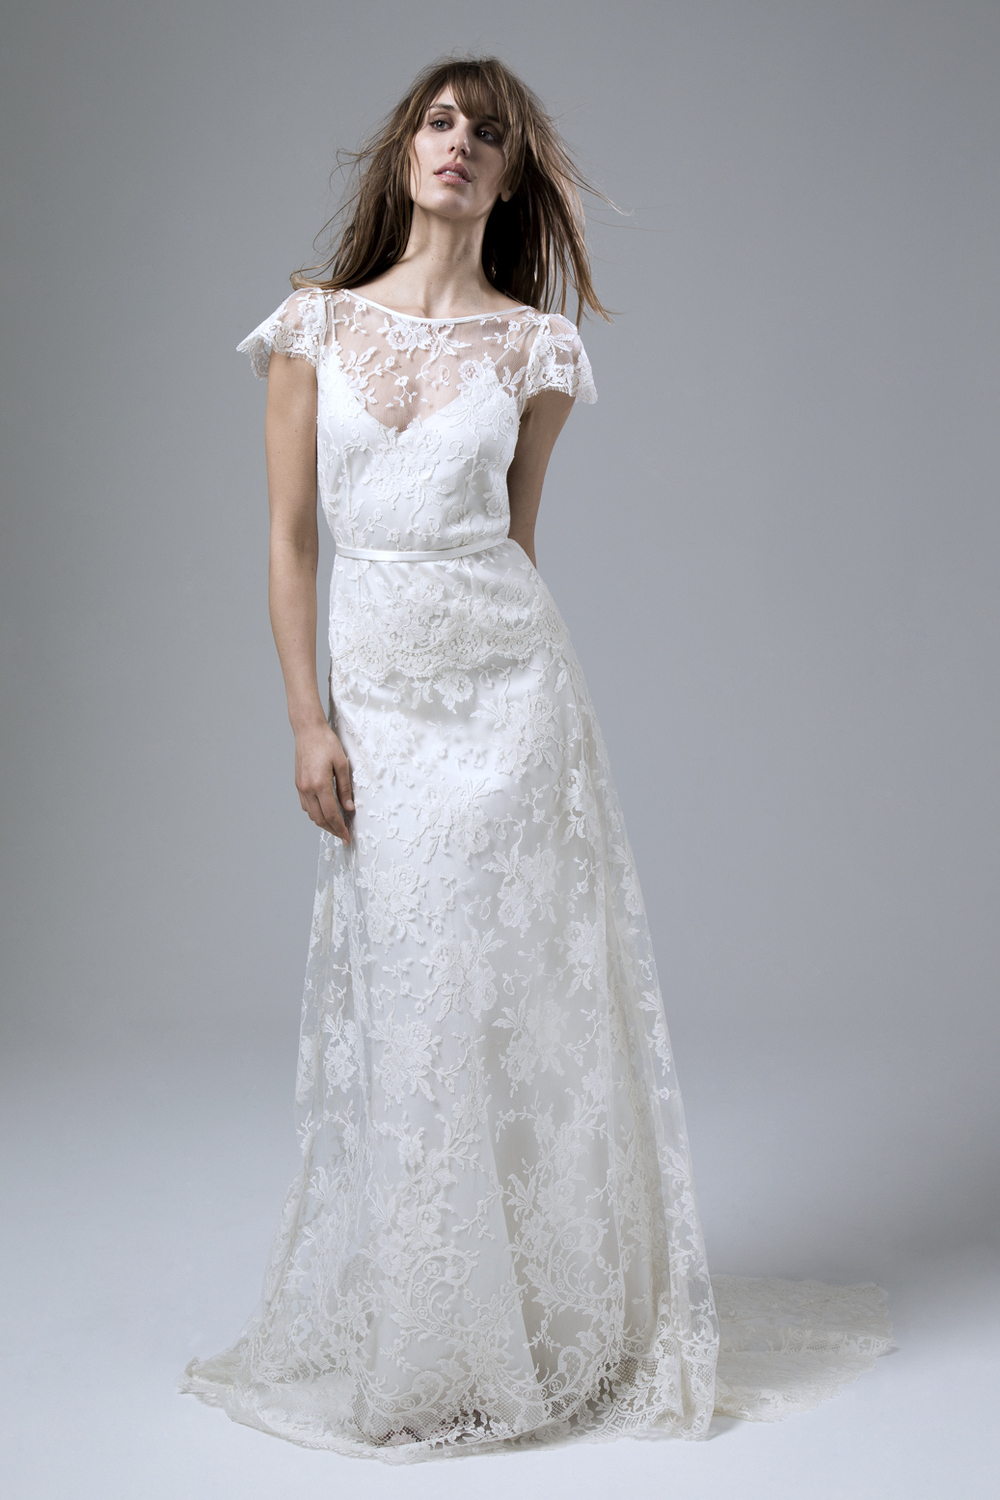 Iris Rose Full French Lace Wedding Dress by Halfpenny London